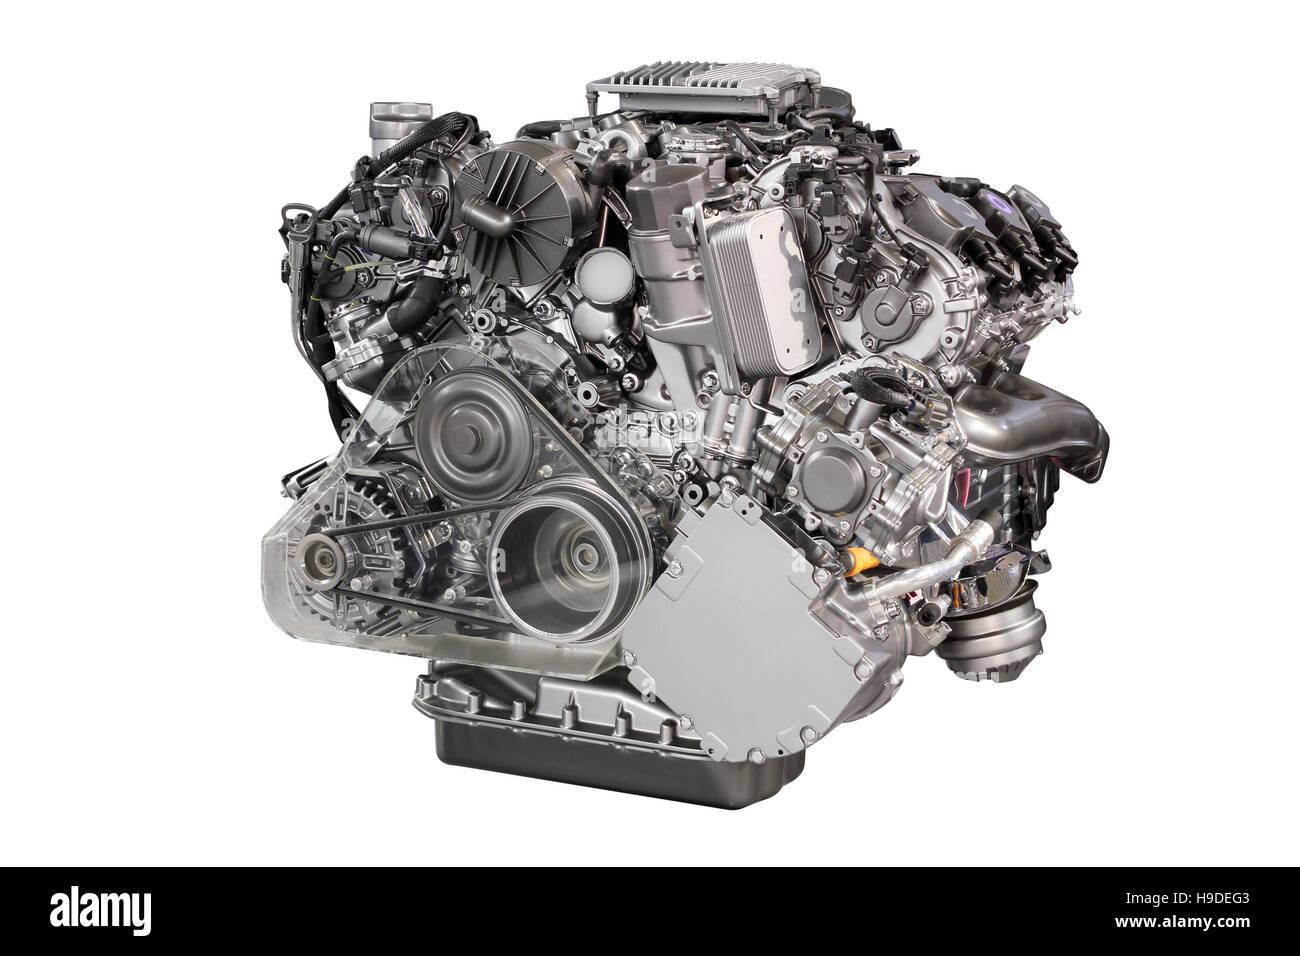 Internal Combustion Engine Cut Out Stock Images & Pictures - Alamy